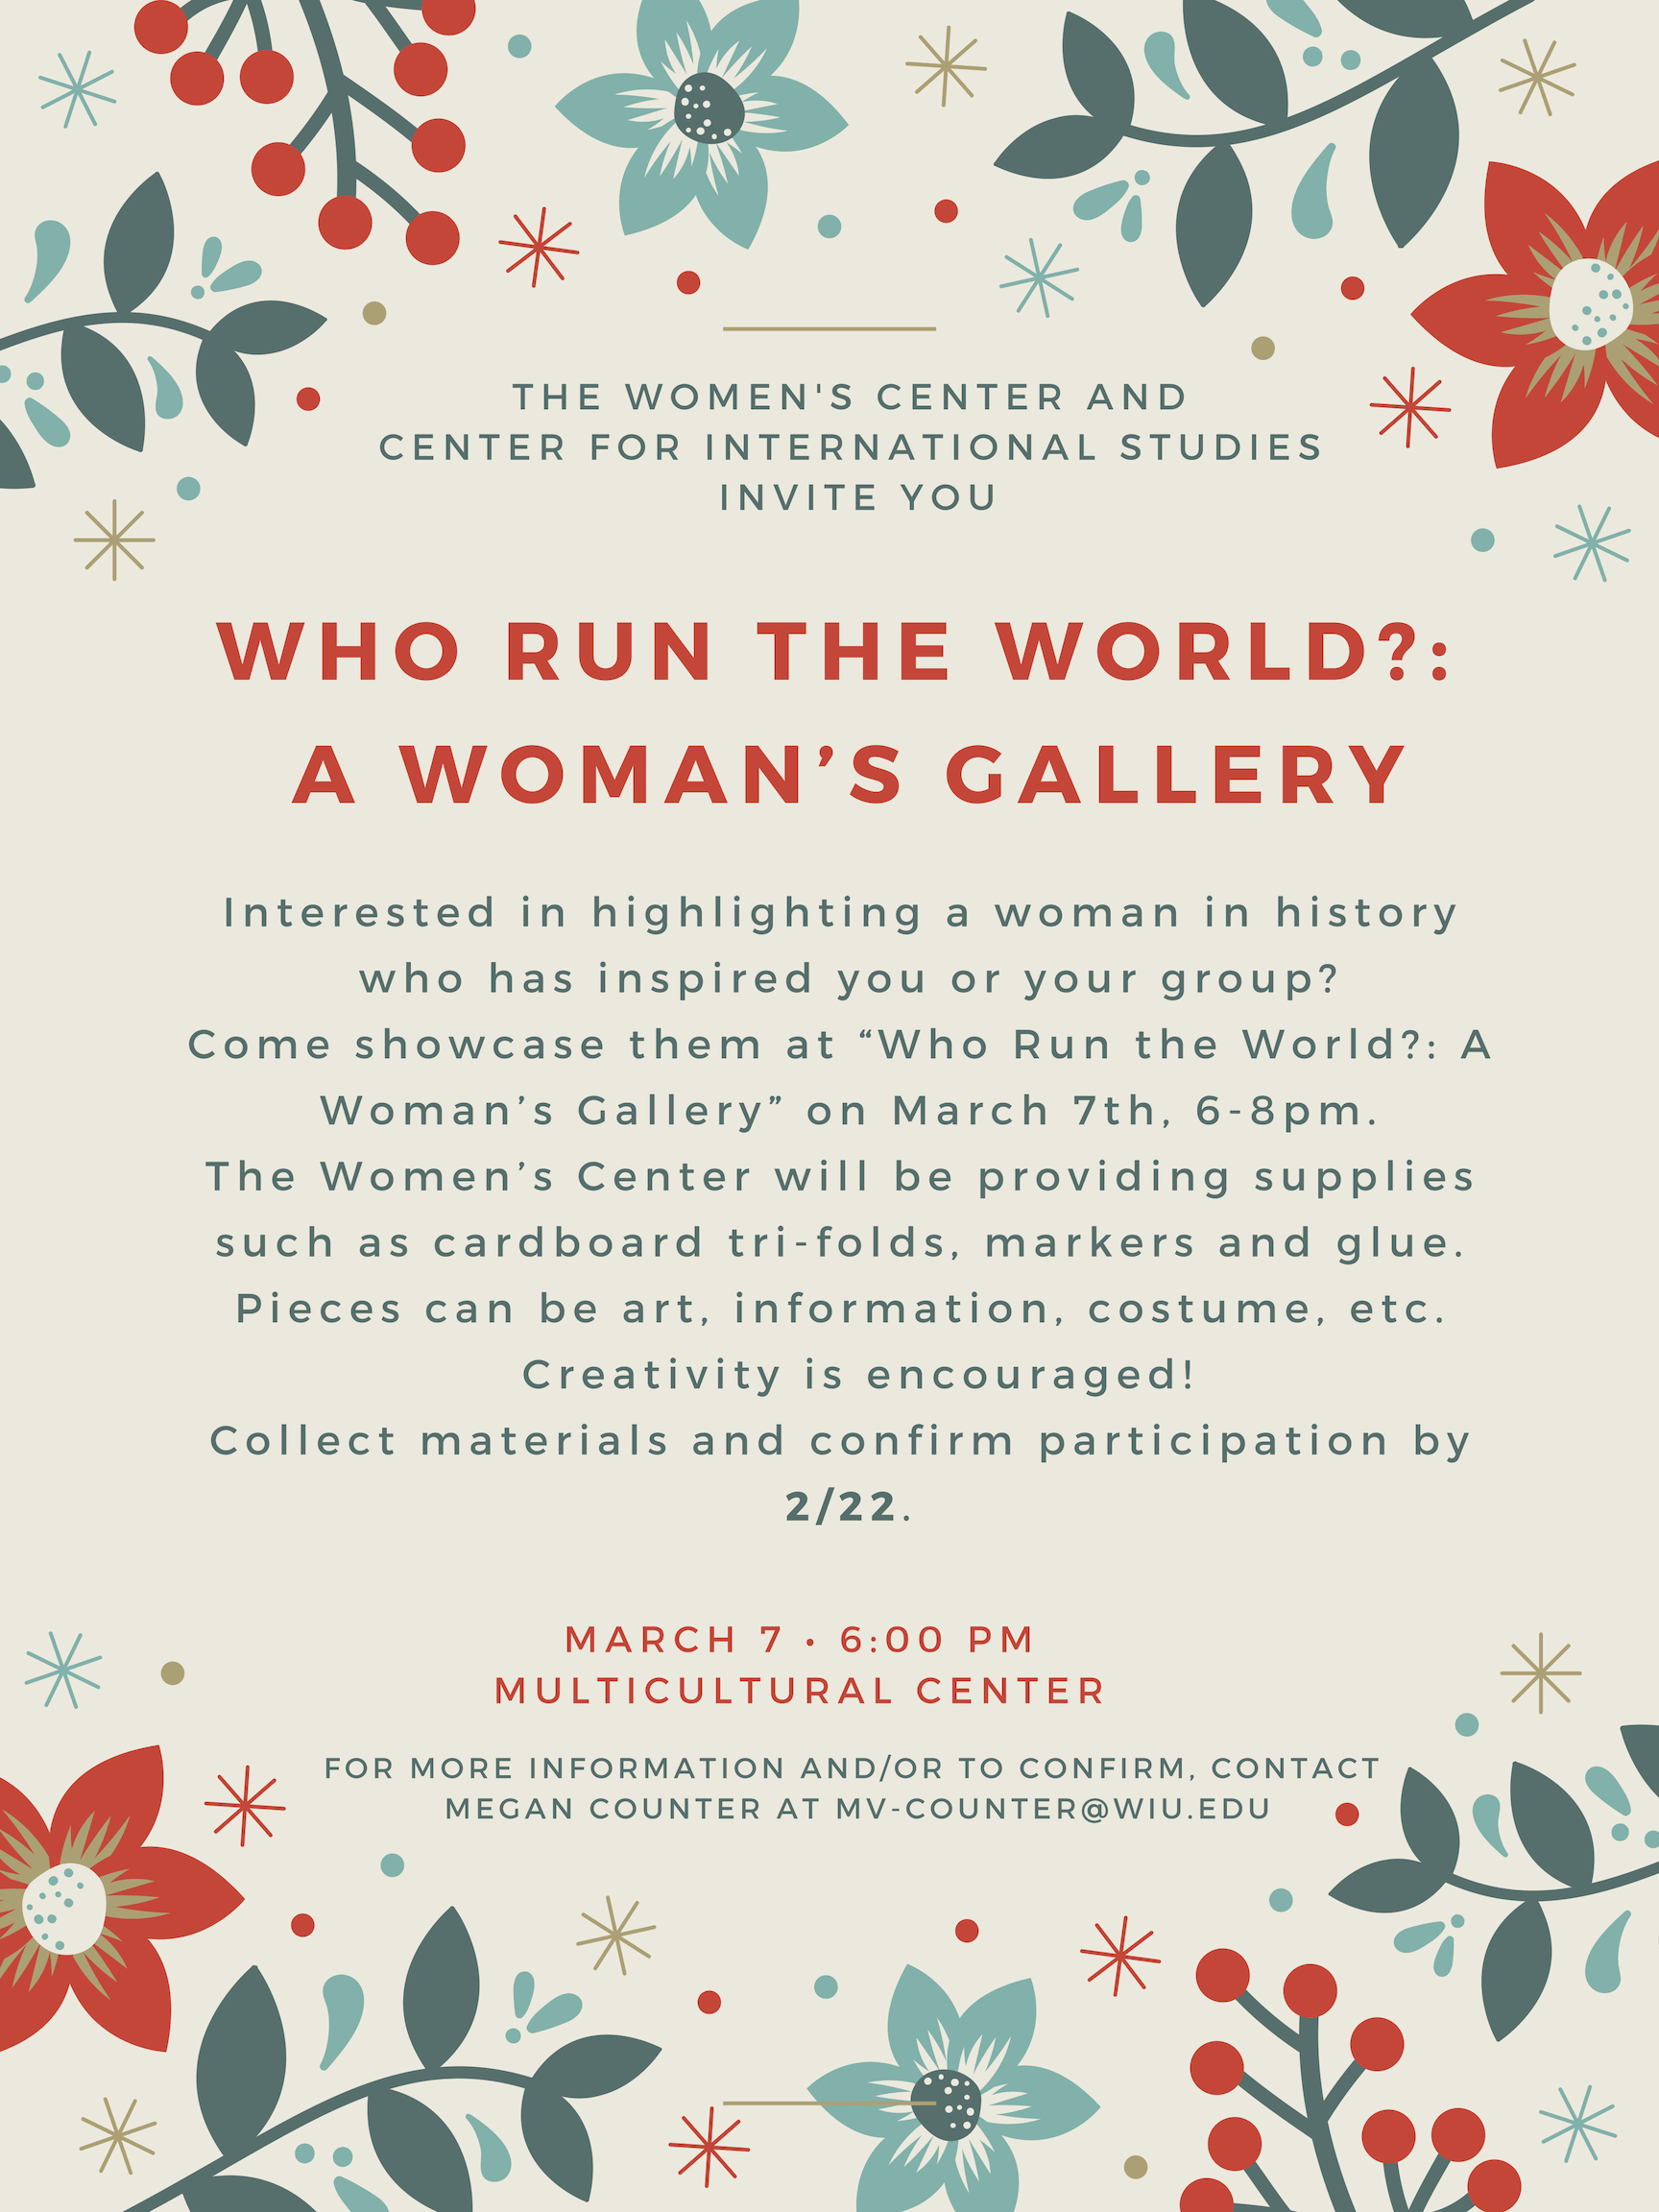 Join a gallery celebrating women around the world. Interested groups contact Megan Counter at mv-counter@wiu.edu . Event is March 7th in the MCC starting at 6pm.